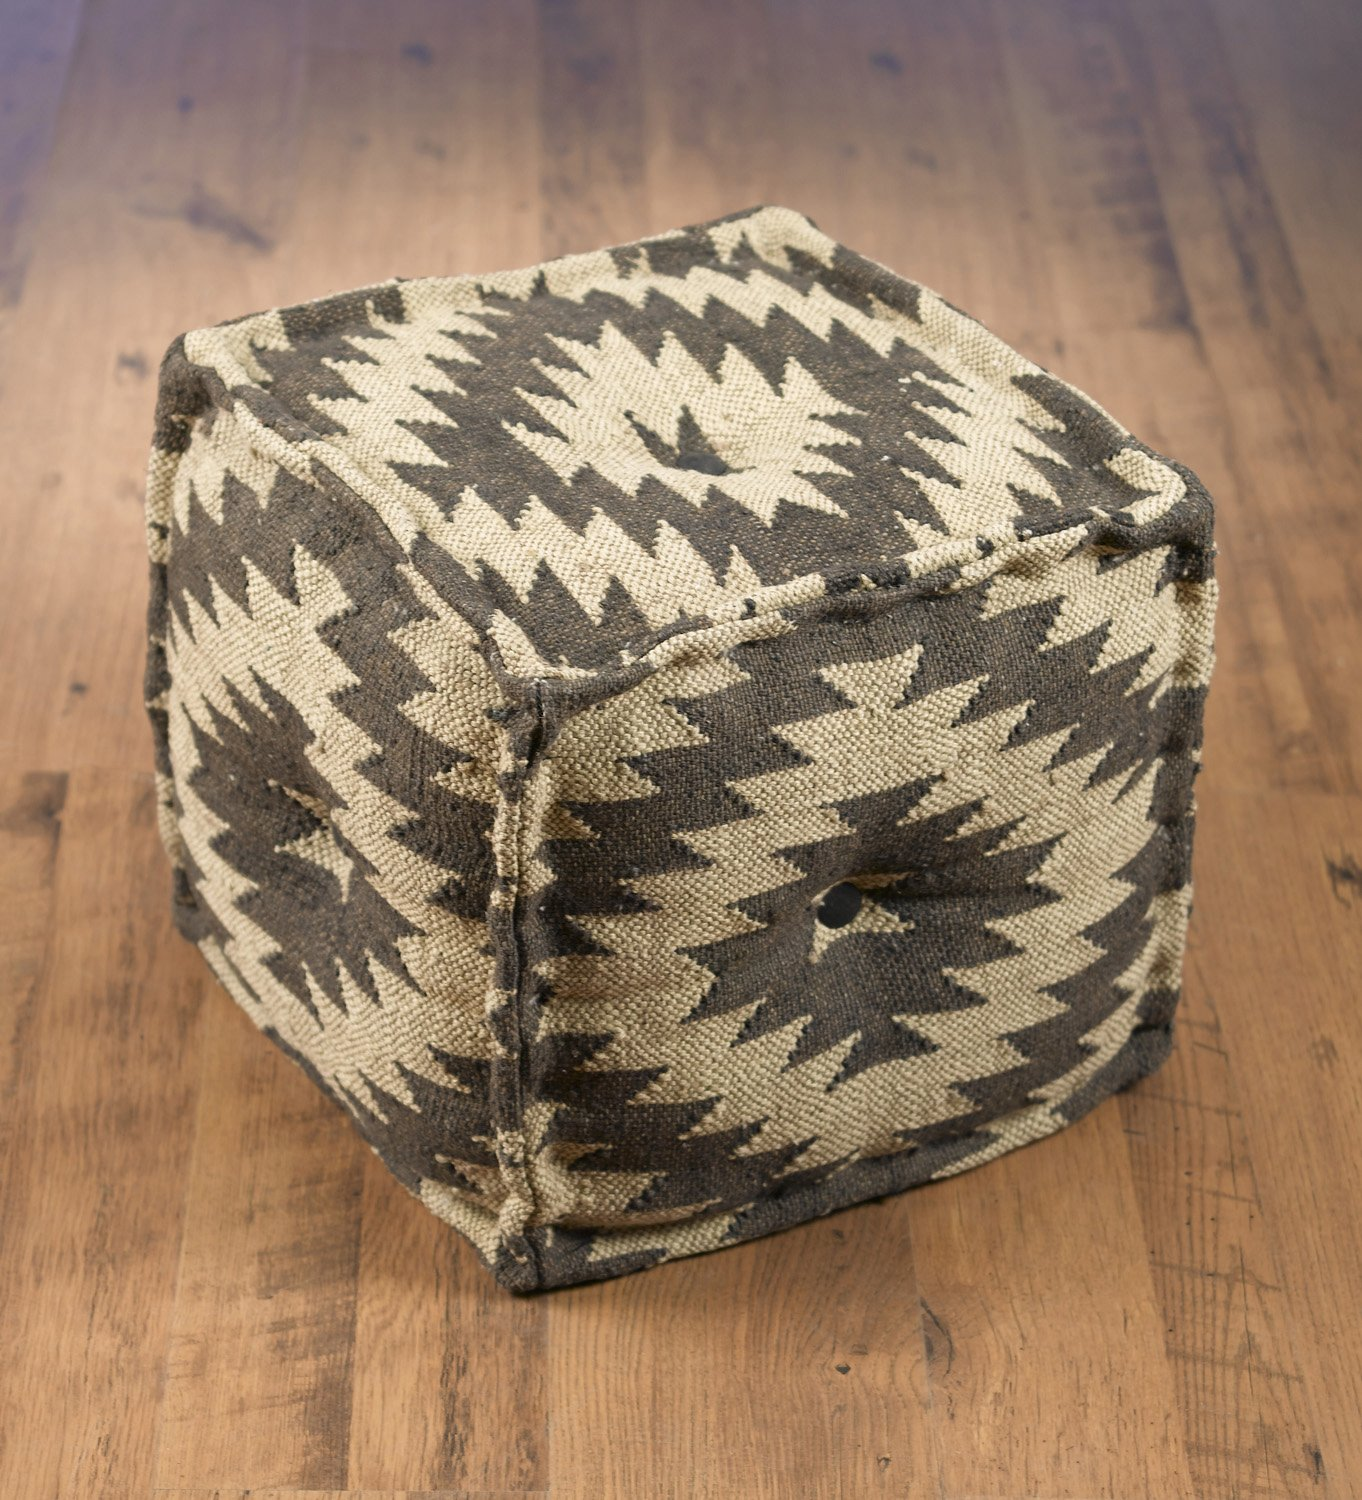 Wool Ottomans Aa Importing 48848 Black And White Chevron Pattern Pouf 16 X 17 X 17 Inches Black Model # 48848